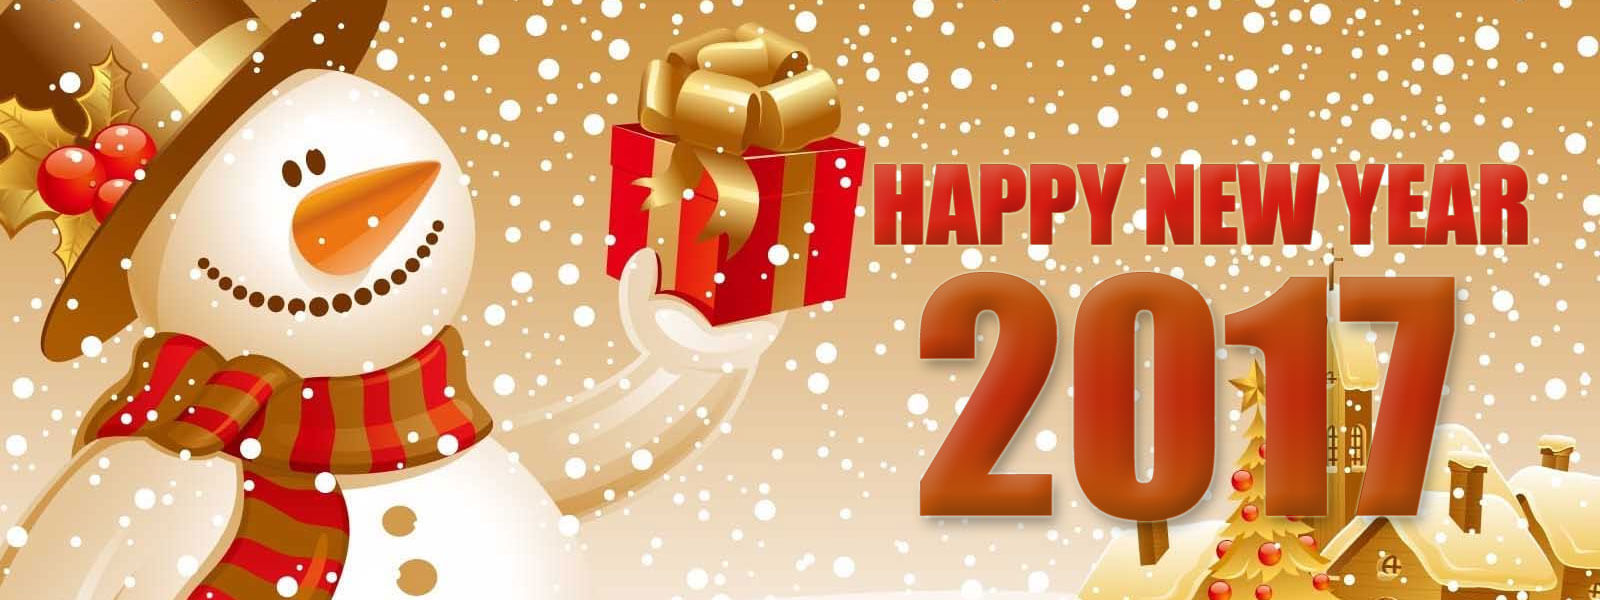 Best Happy new year 2017 Wallpapers